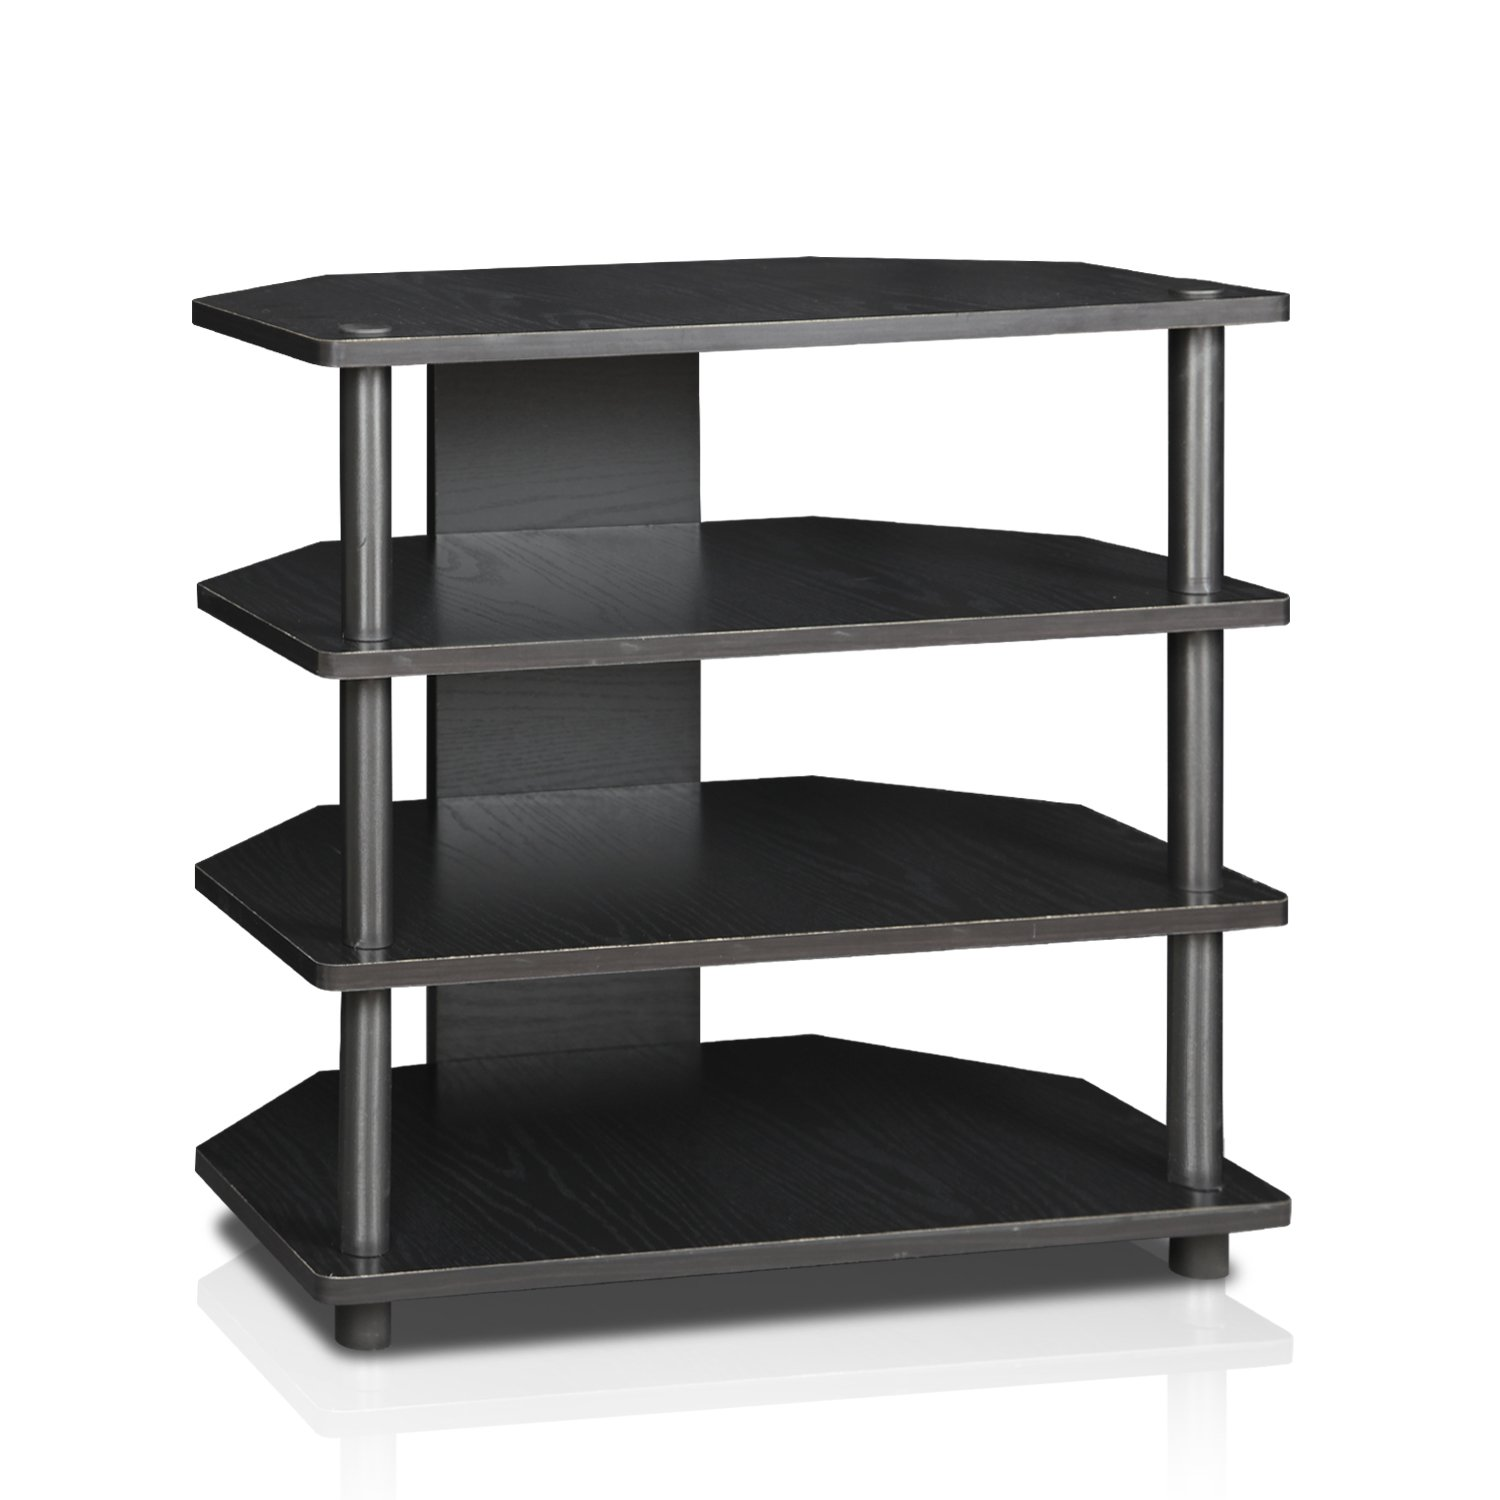 Furinno Turn-N-Tube Easy Assembly 4-Tier Petite TV Stand 15093BW/BK, Blackwood by Furinno